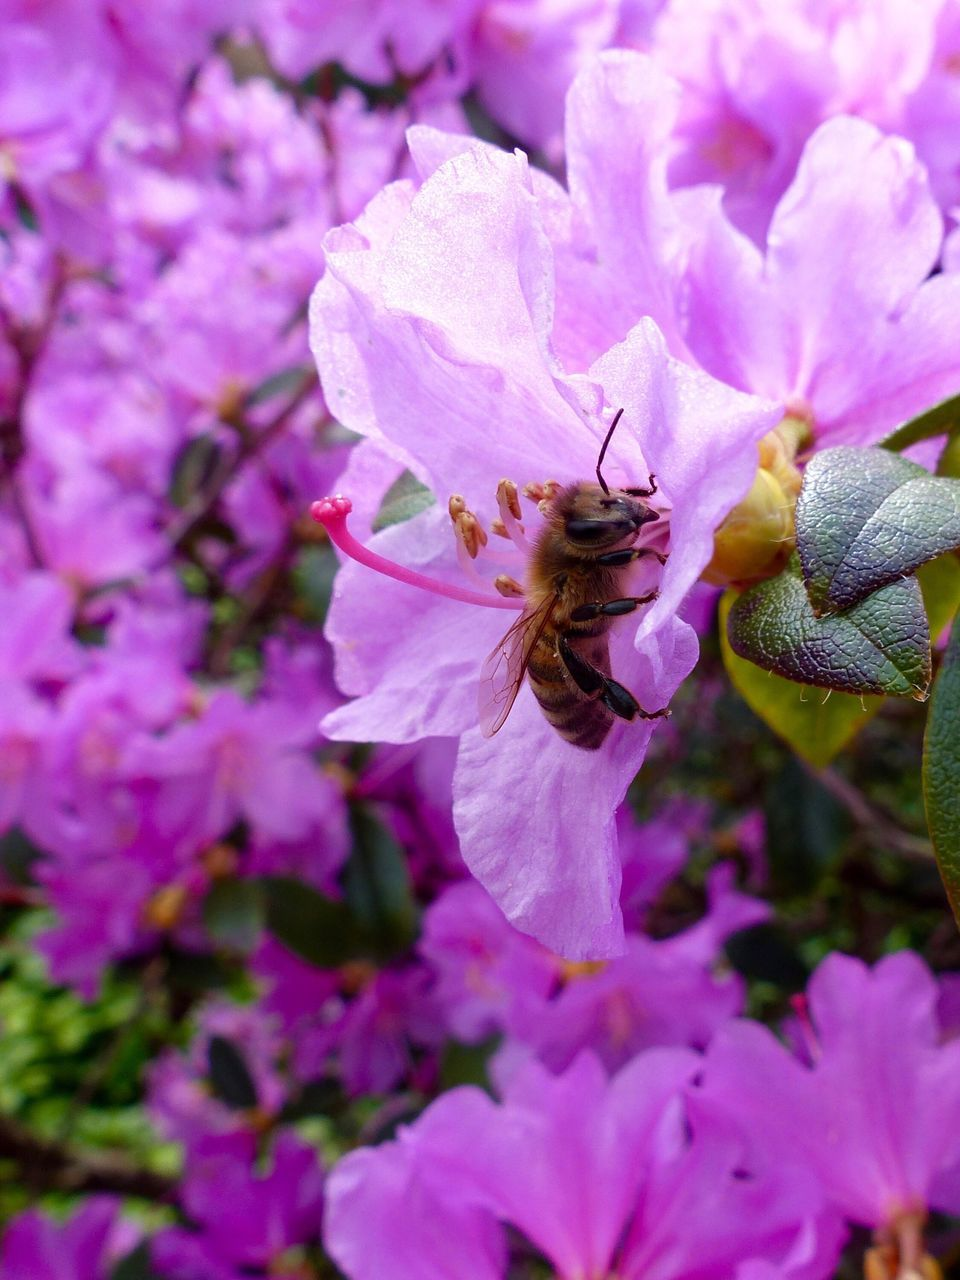 flower, fragility, petal, one animal, nature, growth, beauty in nature, freshness, insect, no people, animals in the wild, animal themes, flower head, pink color, outdoors, springtime, close-up, bee, pollination, day, blooming